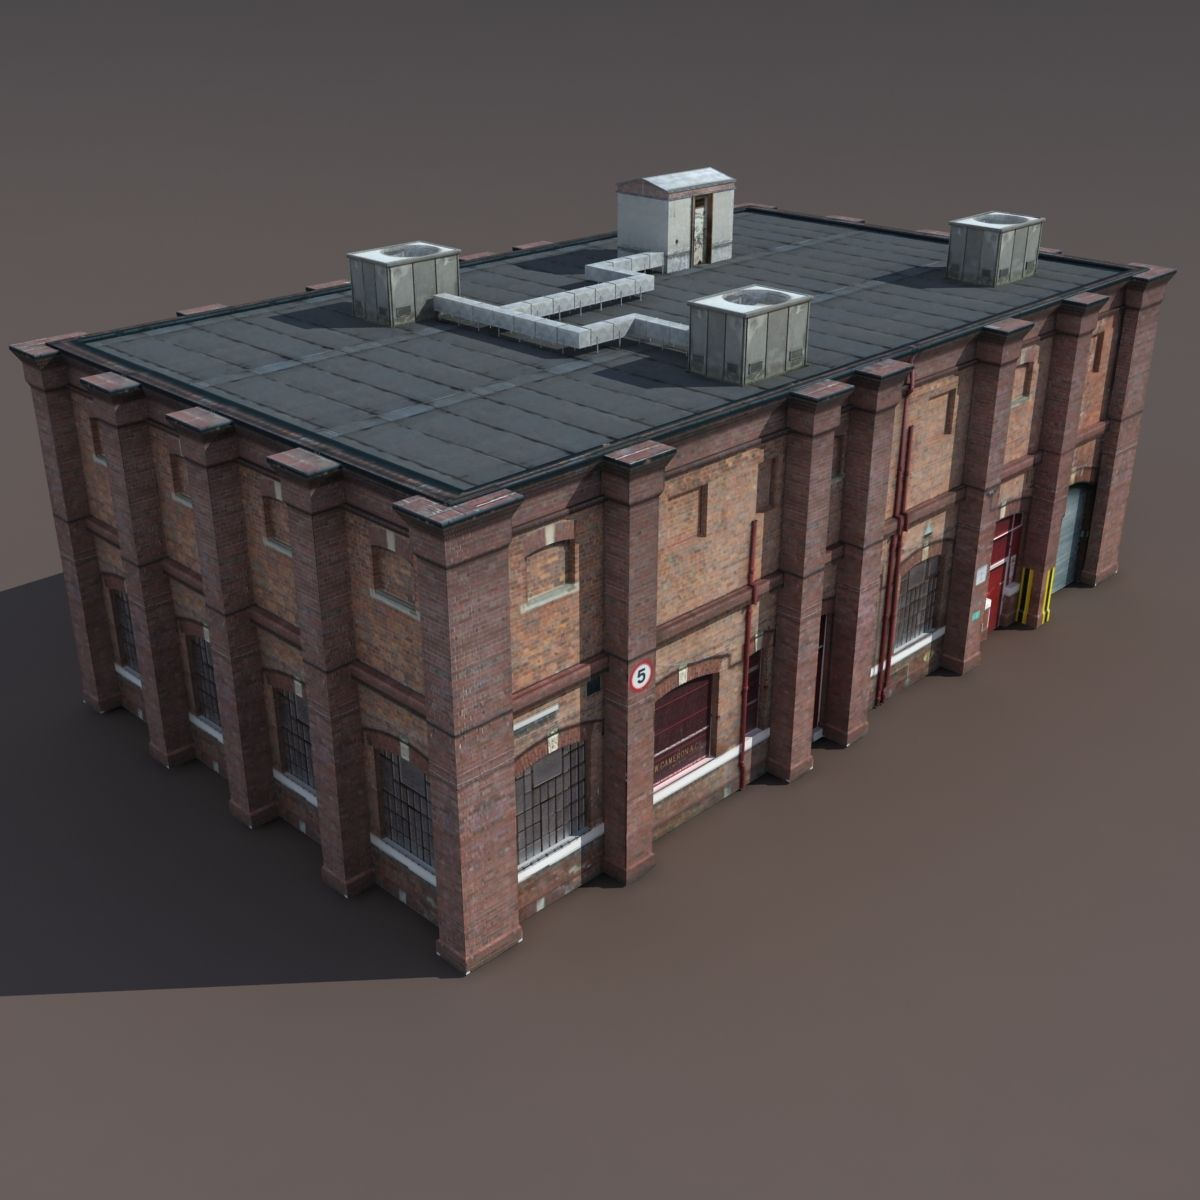 Old Factory Low Poly 3d Building In 2020 Old Factory 3d Building Low Poly 3d